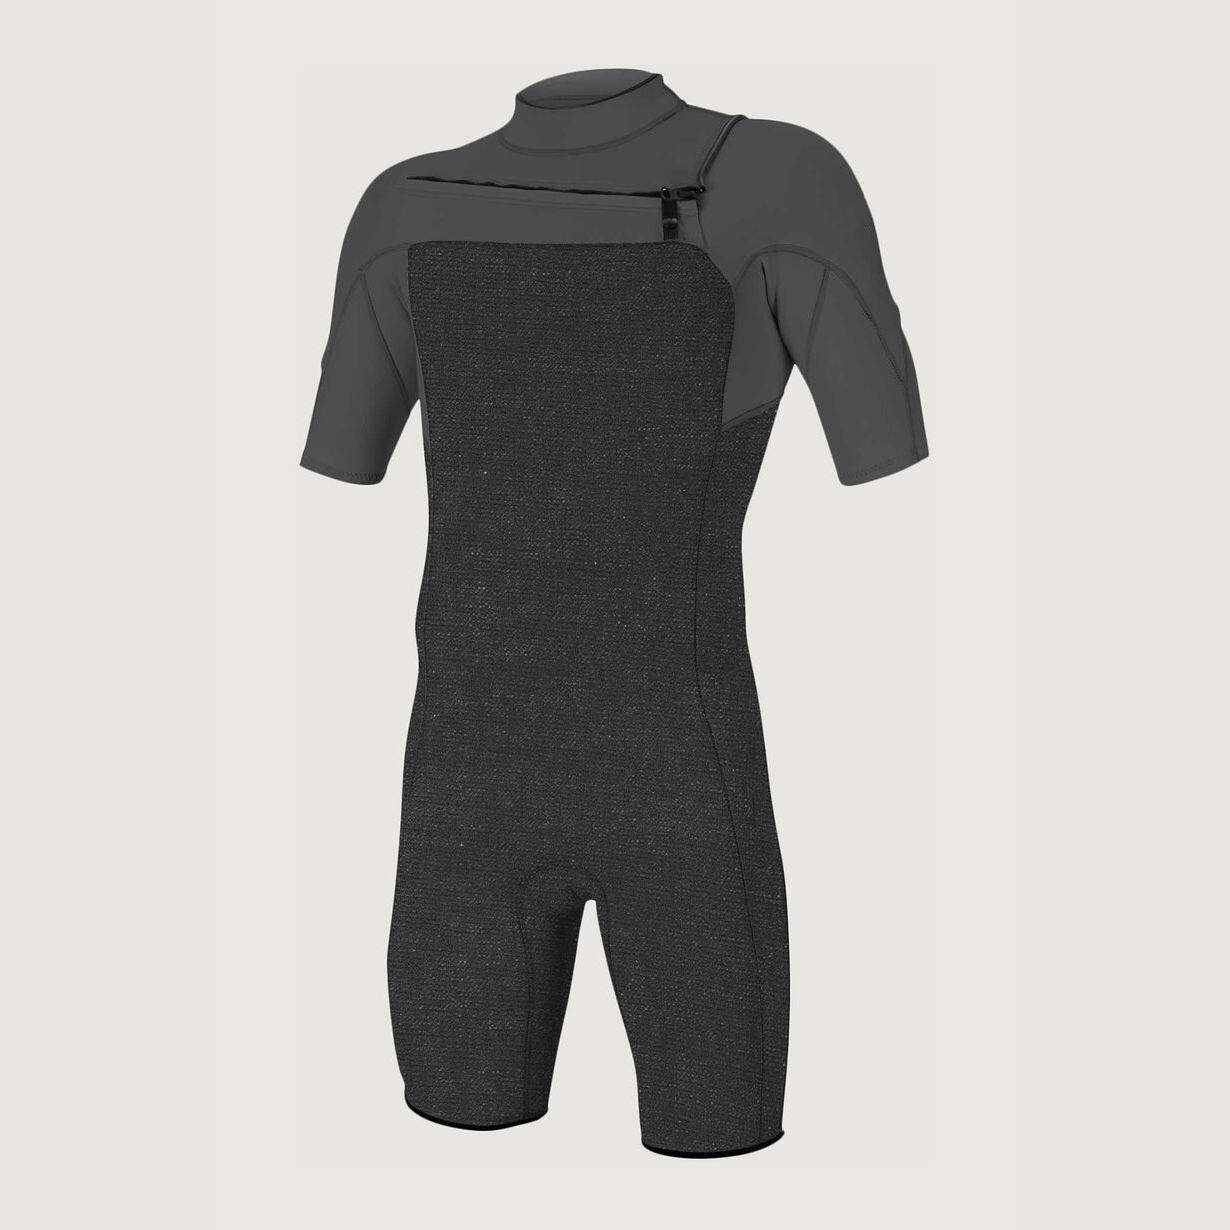 Flexible Neoprene Wetsuit Surfing und Scuba Diving Wetsuits für Men 2021